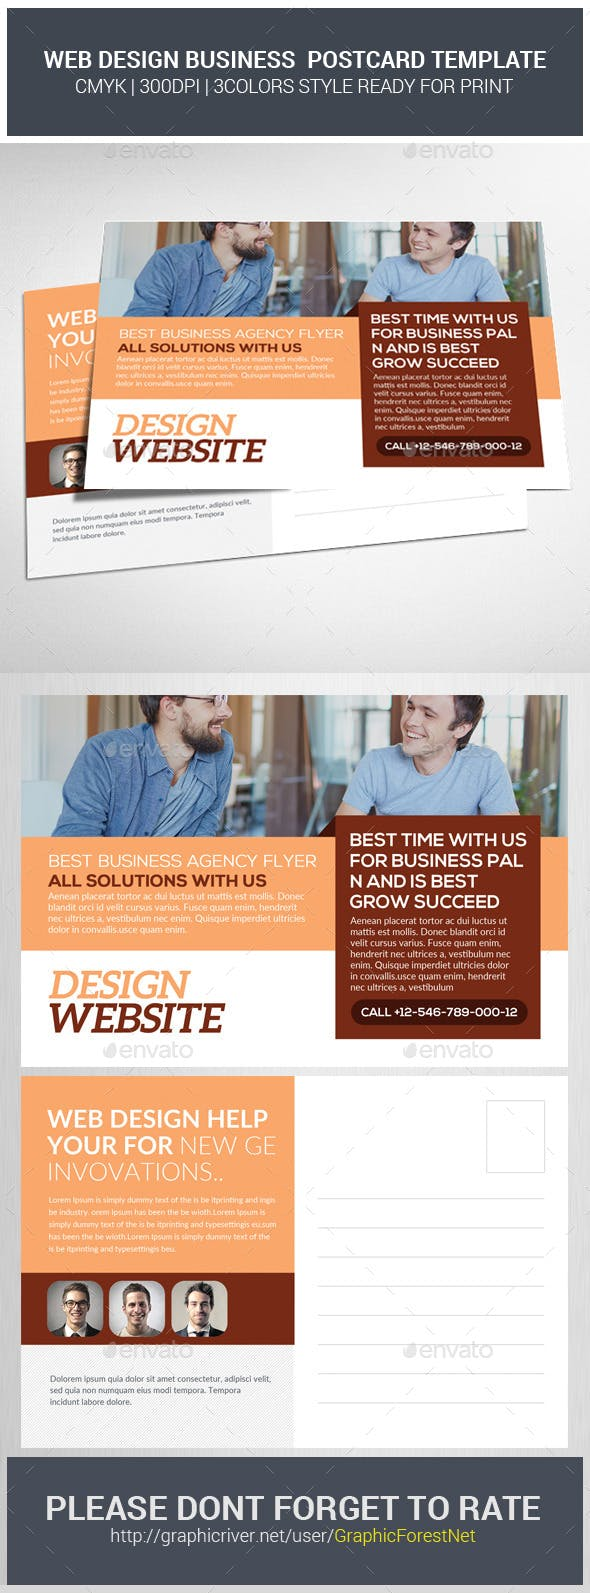 Web Design Company Postcard Psd Template By Graphicforestnet